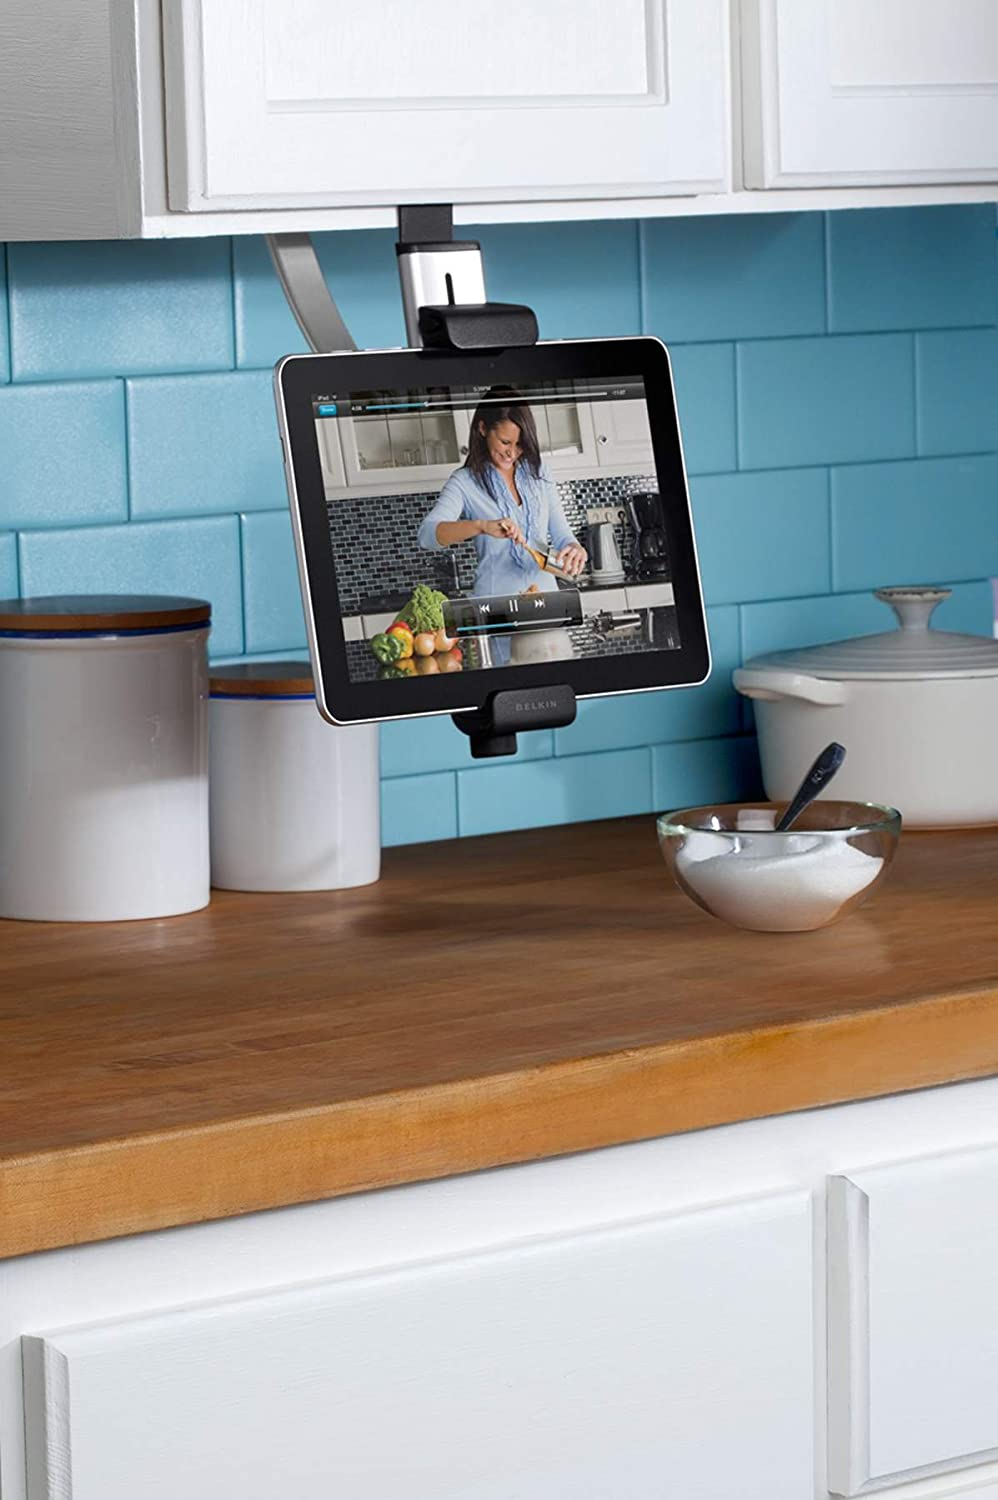 Amazon.com: Belkin Kitchen Cabinet Tablet Mount: Computers ...